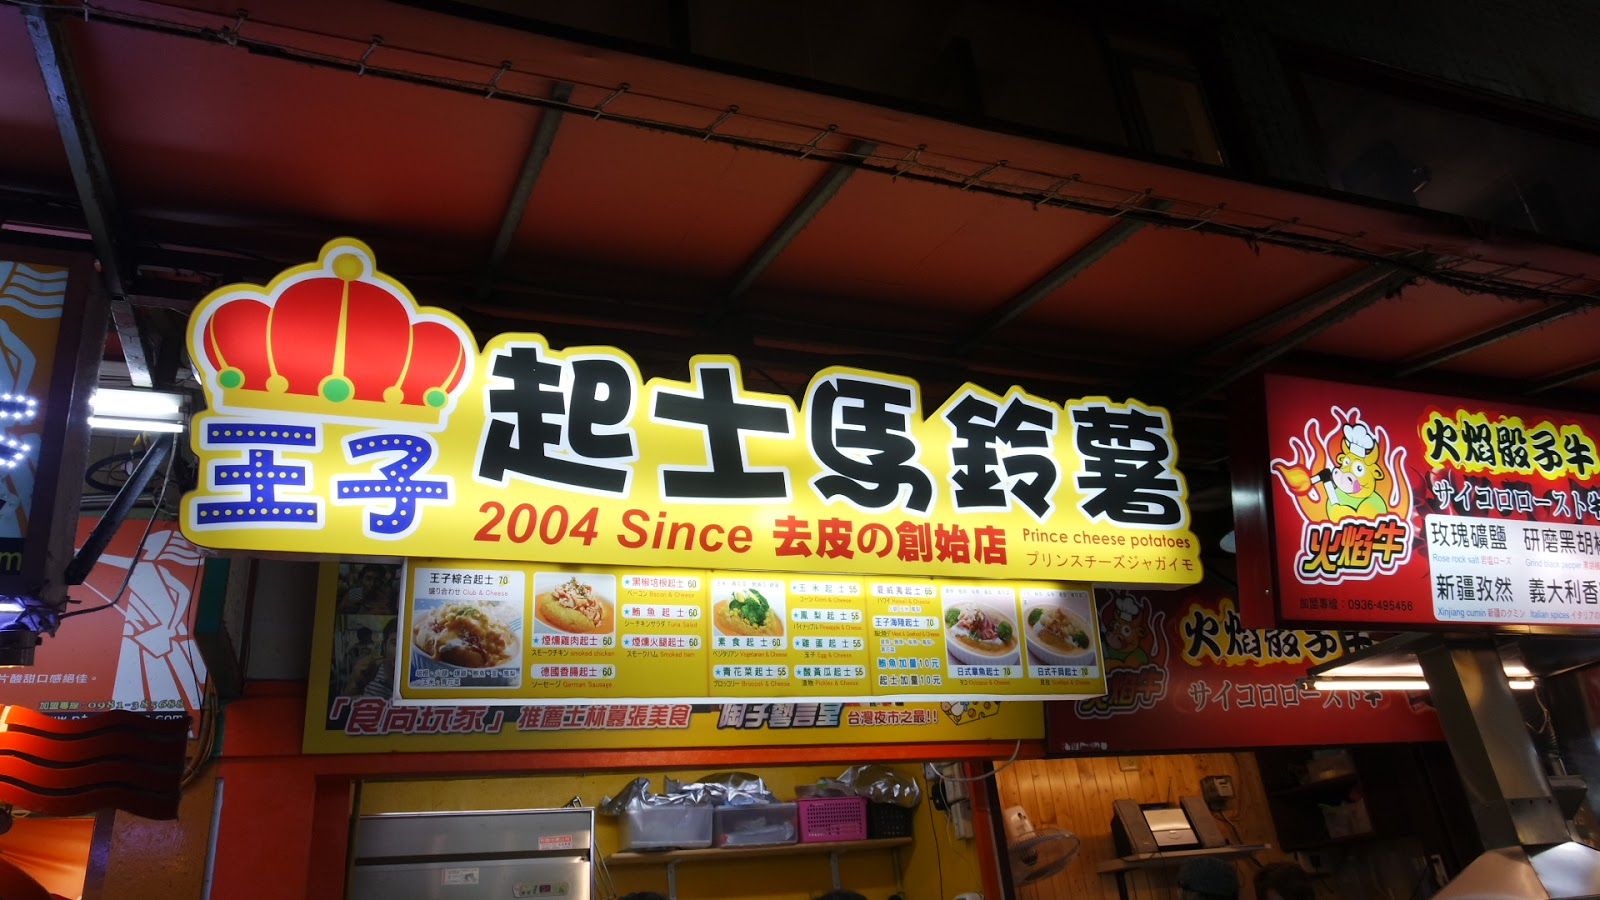 taiwan food places Reserve a table for the best dining in kaohsiung, taiwan on tripadvisor: see 30,331 reviews of 3,640 kaohsiung restaurants and search by cuisine, price, location, and more.